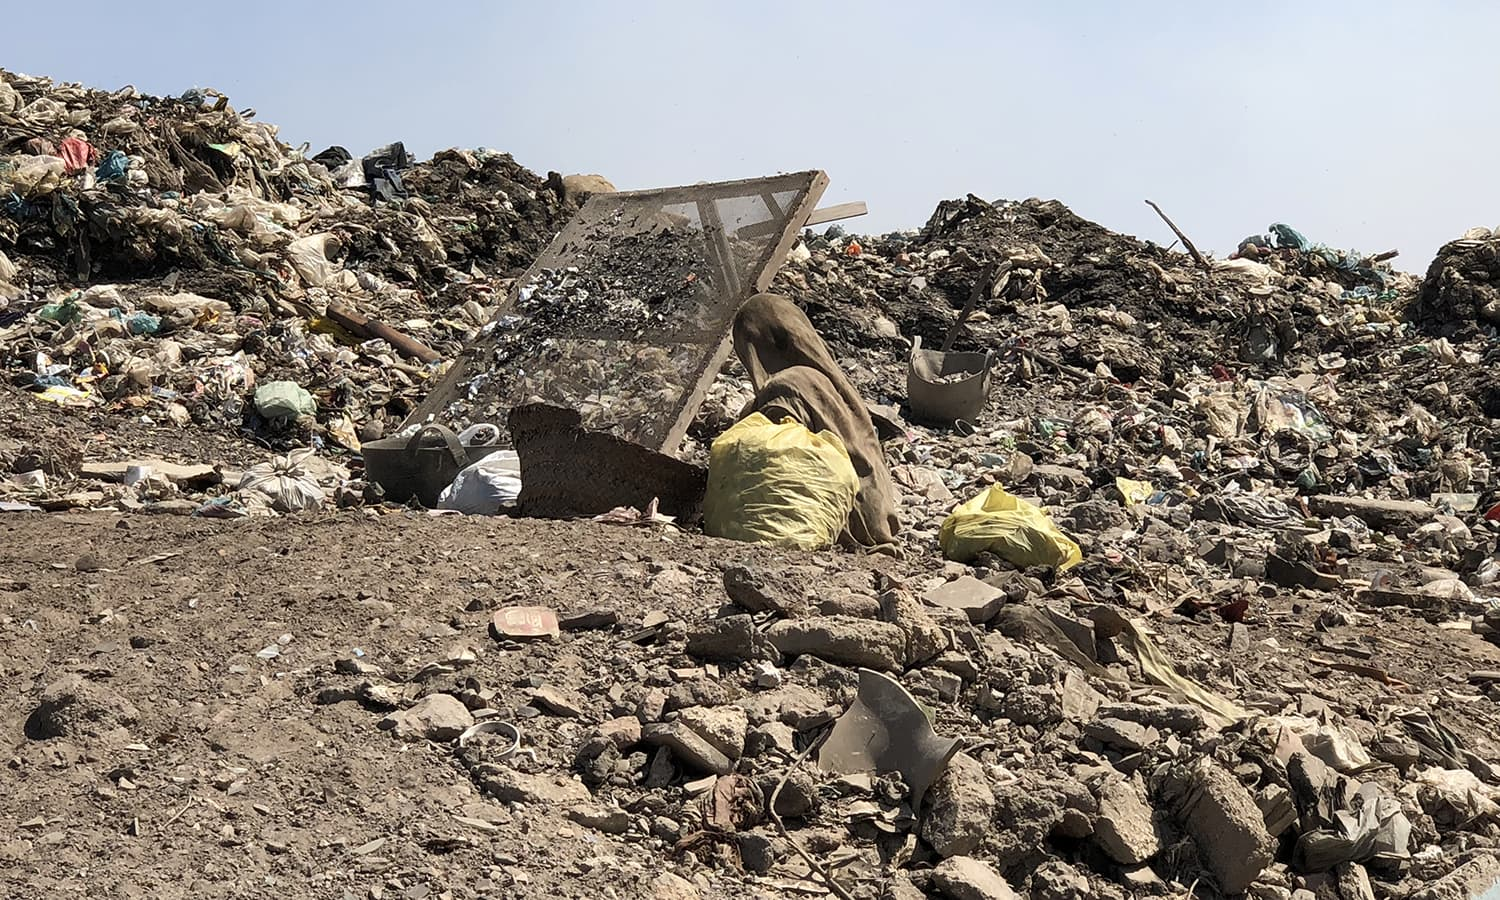 Razia Ghulam Hussain, a nymph of a woman, mother of five, busy sifting through garbage. — Photo by author